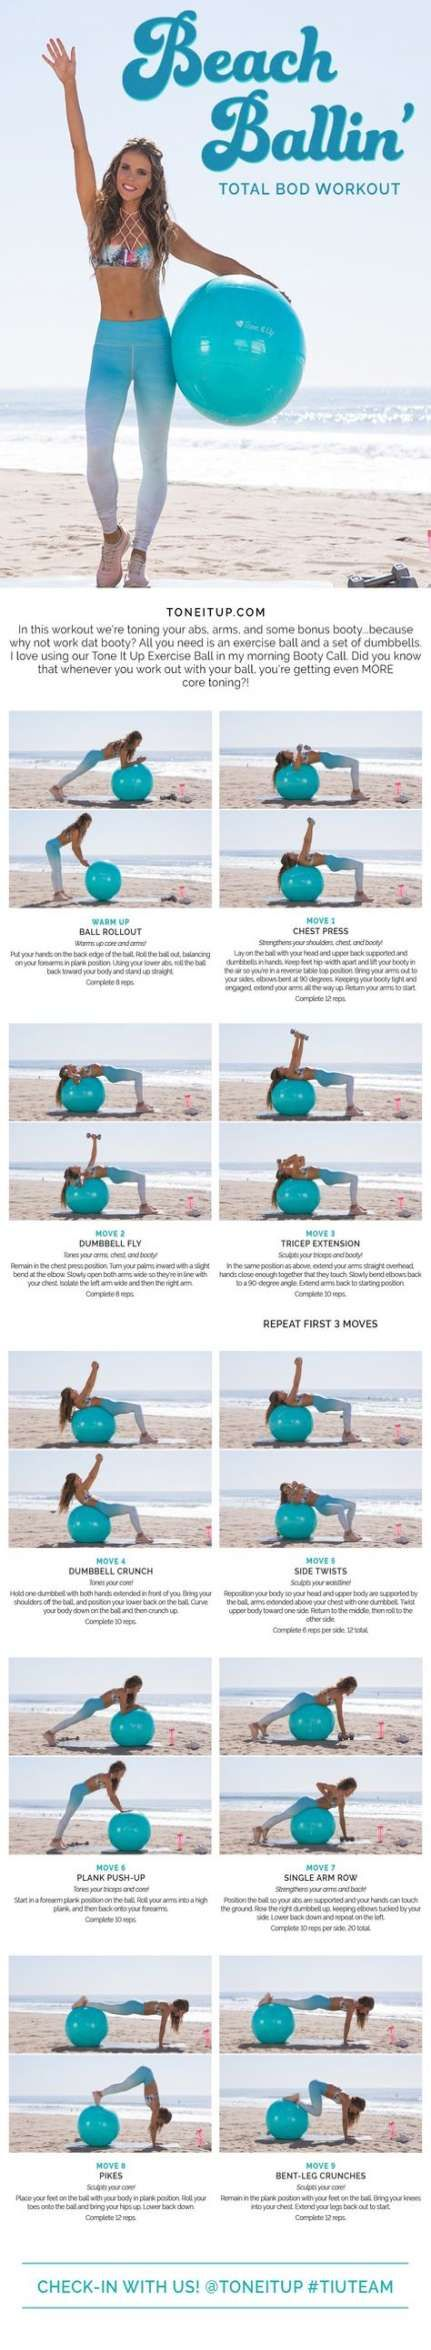 49+ Ideas Fitness Workouts Full Body Fun For 2019 #fitness